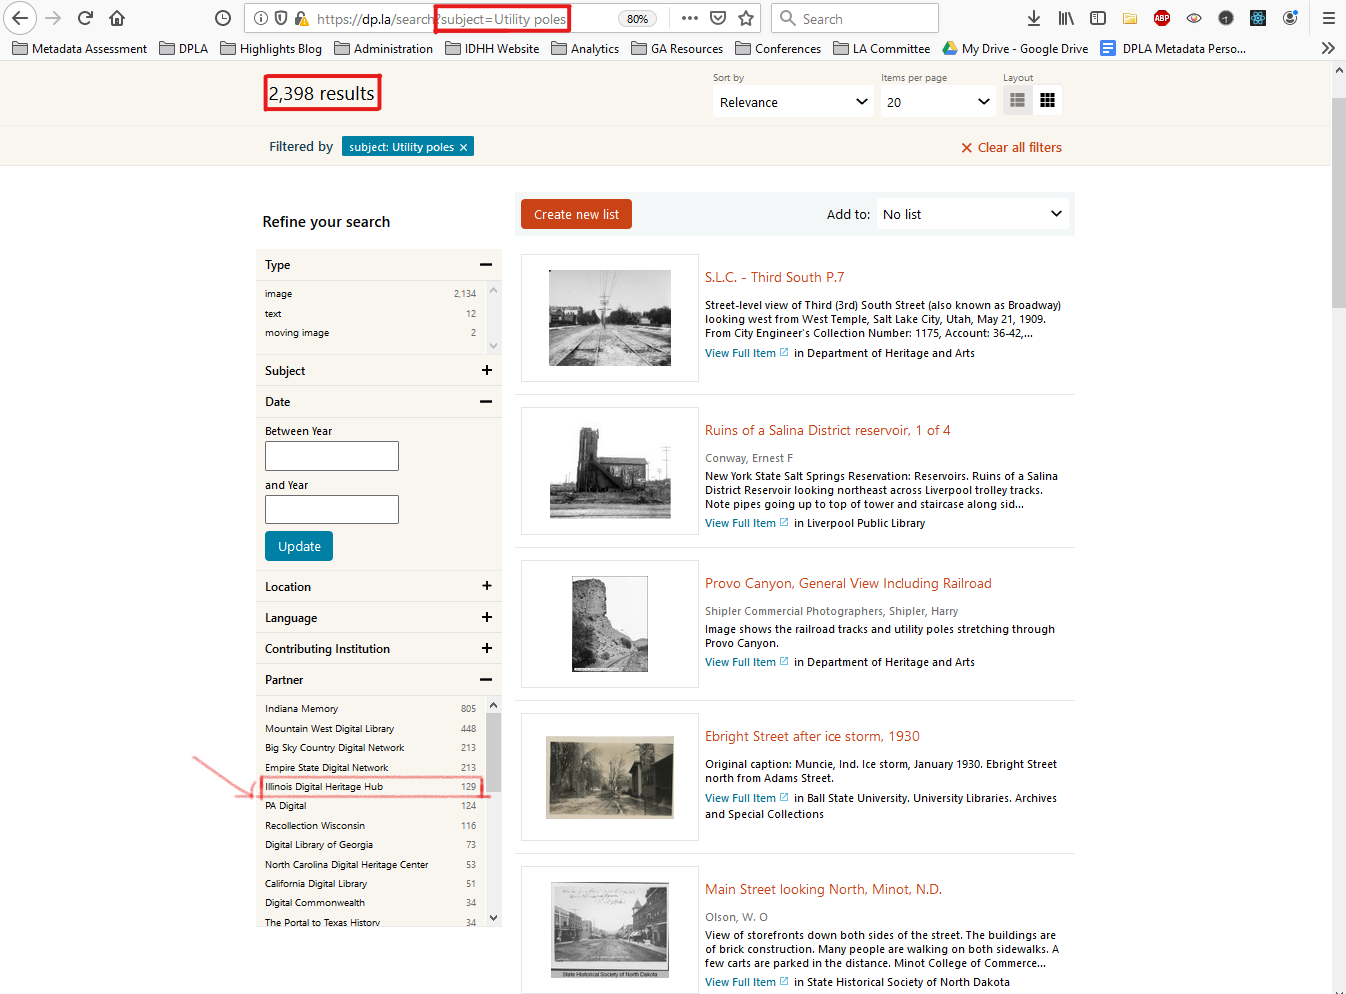 Subject term search in the DPLA catalog